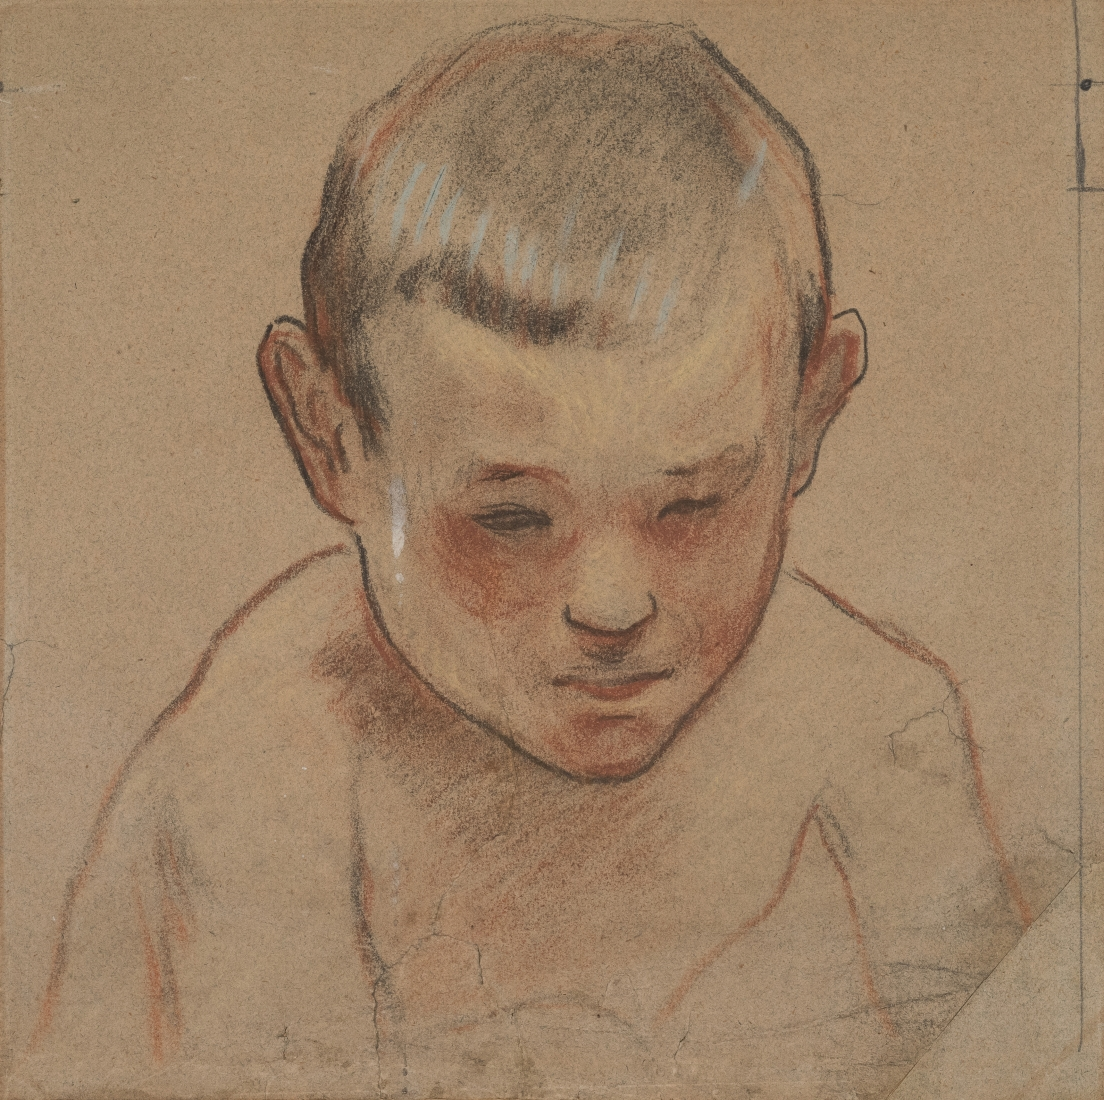 Paul Gauguin Little Breton Boy, c. 1887 Compressed charcoal, red chalk, and white gouache with touches of graphite 7 7/8 x 7 7/8 inches